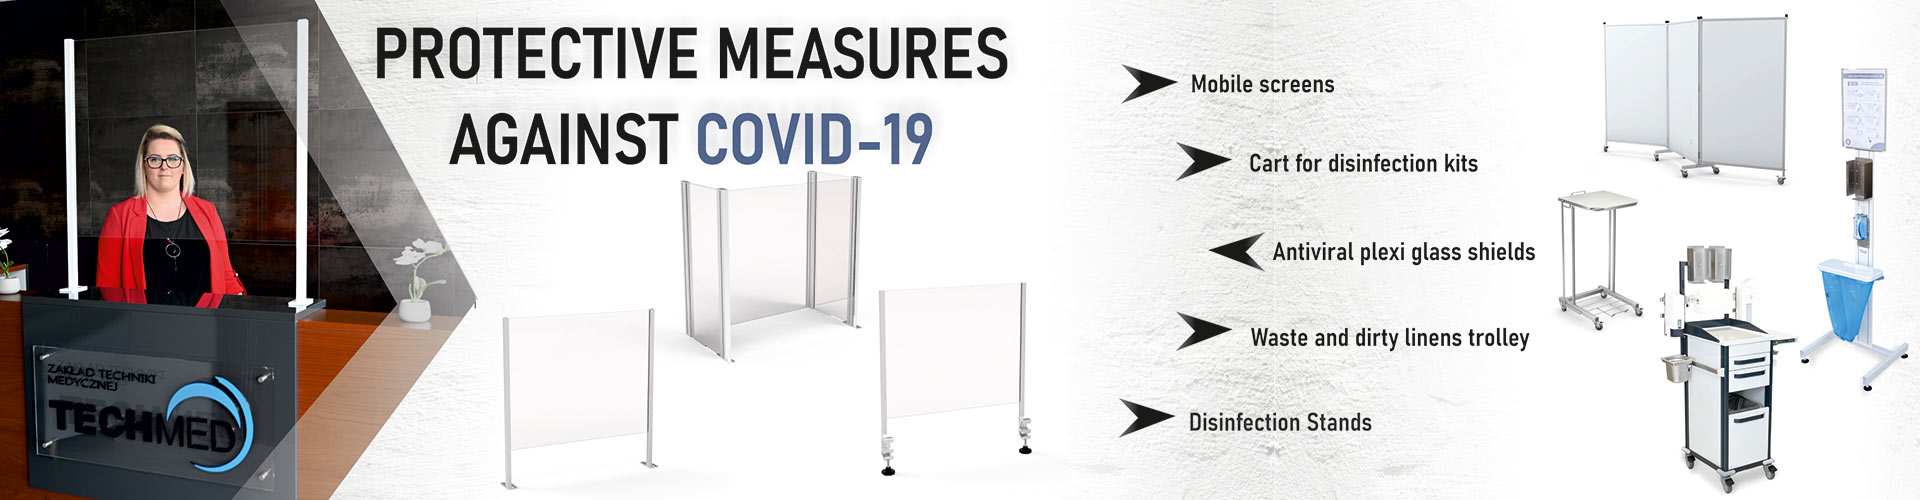 Protective measures against COVID-19